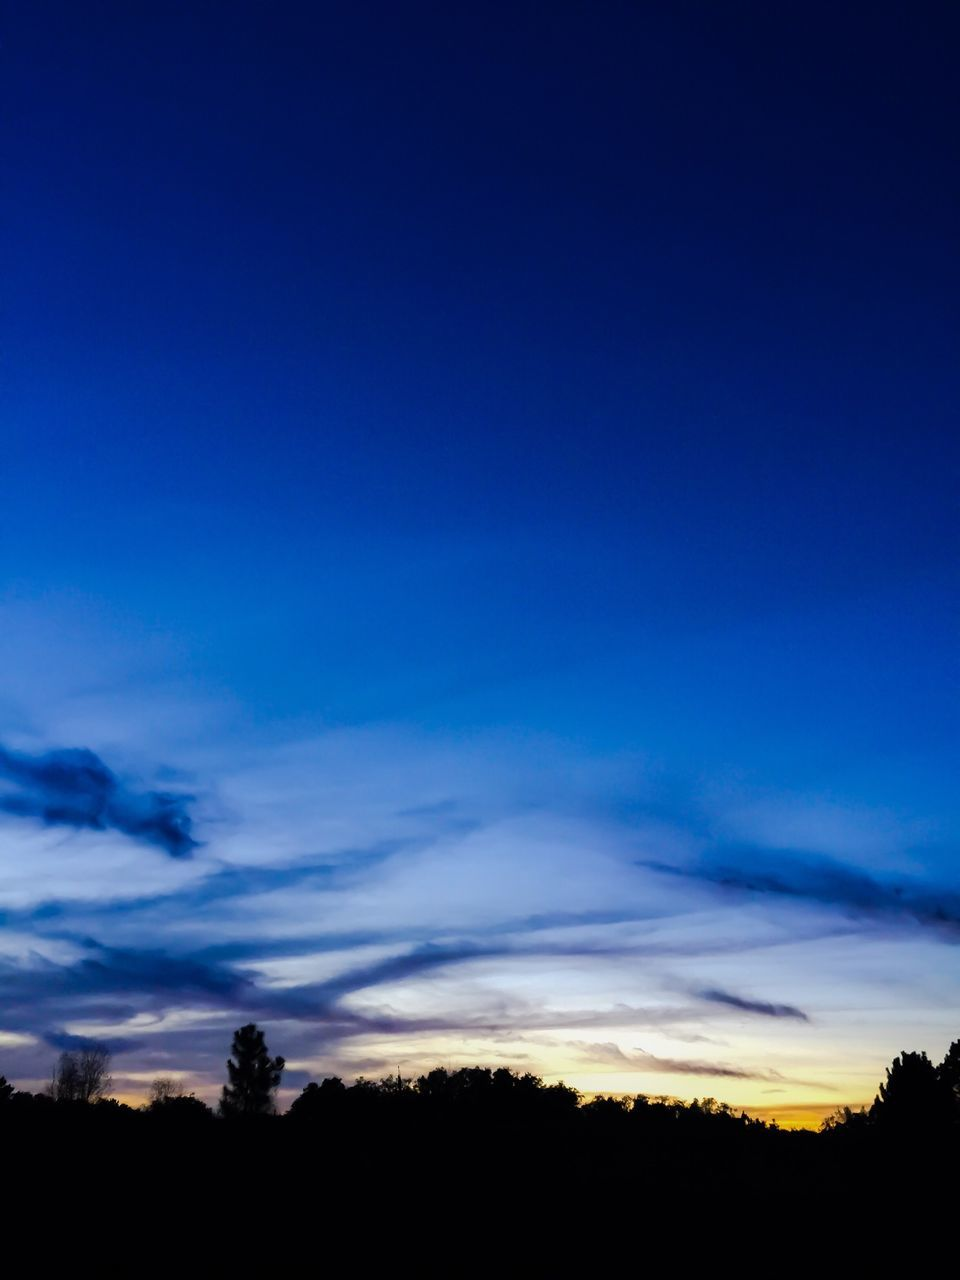 silhouette, blue, tranquil scene, tree, scenics, sunset, sky, beauty in nature, nature, tranquility, outdoors, landscape, no people, night